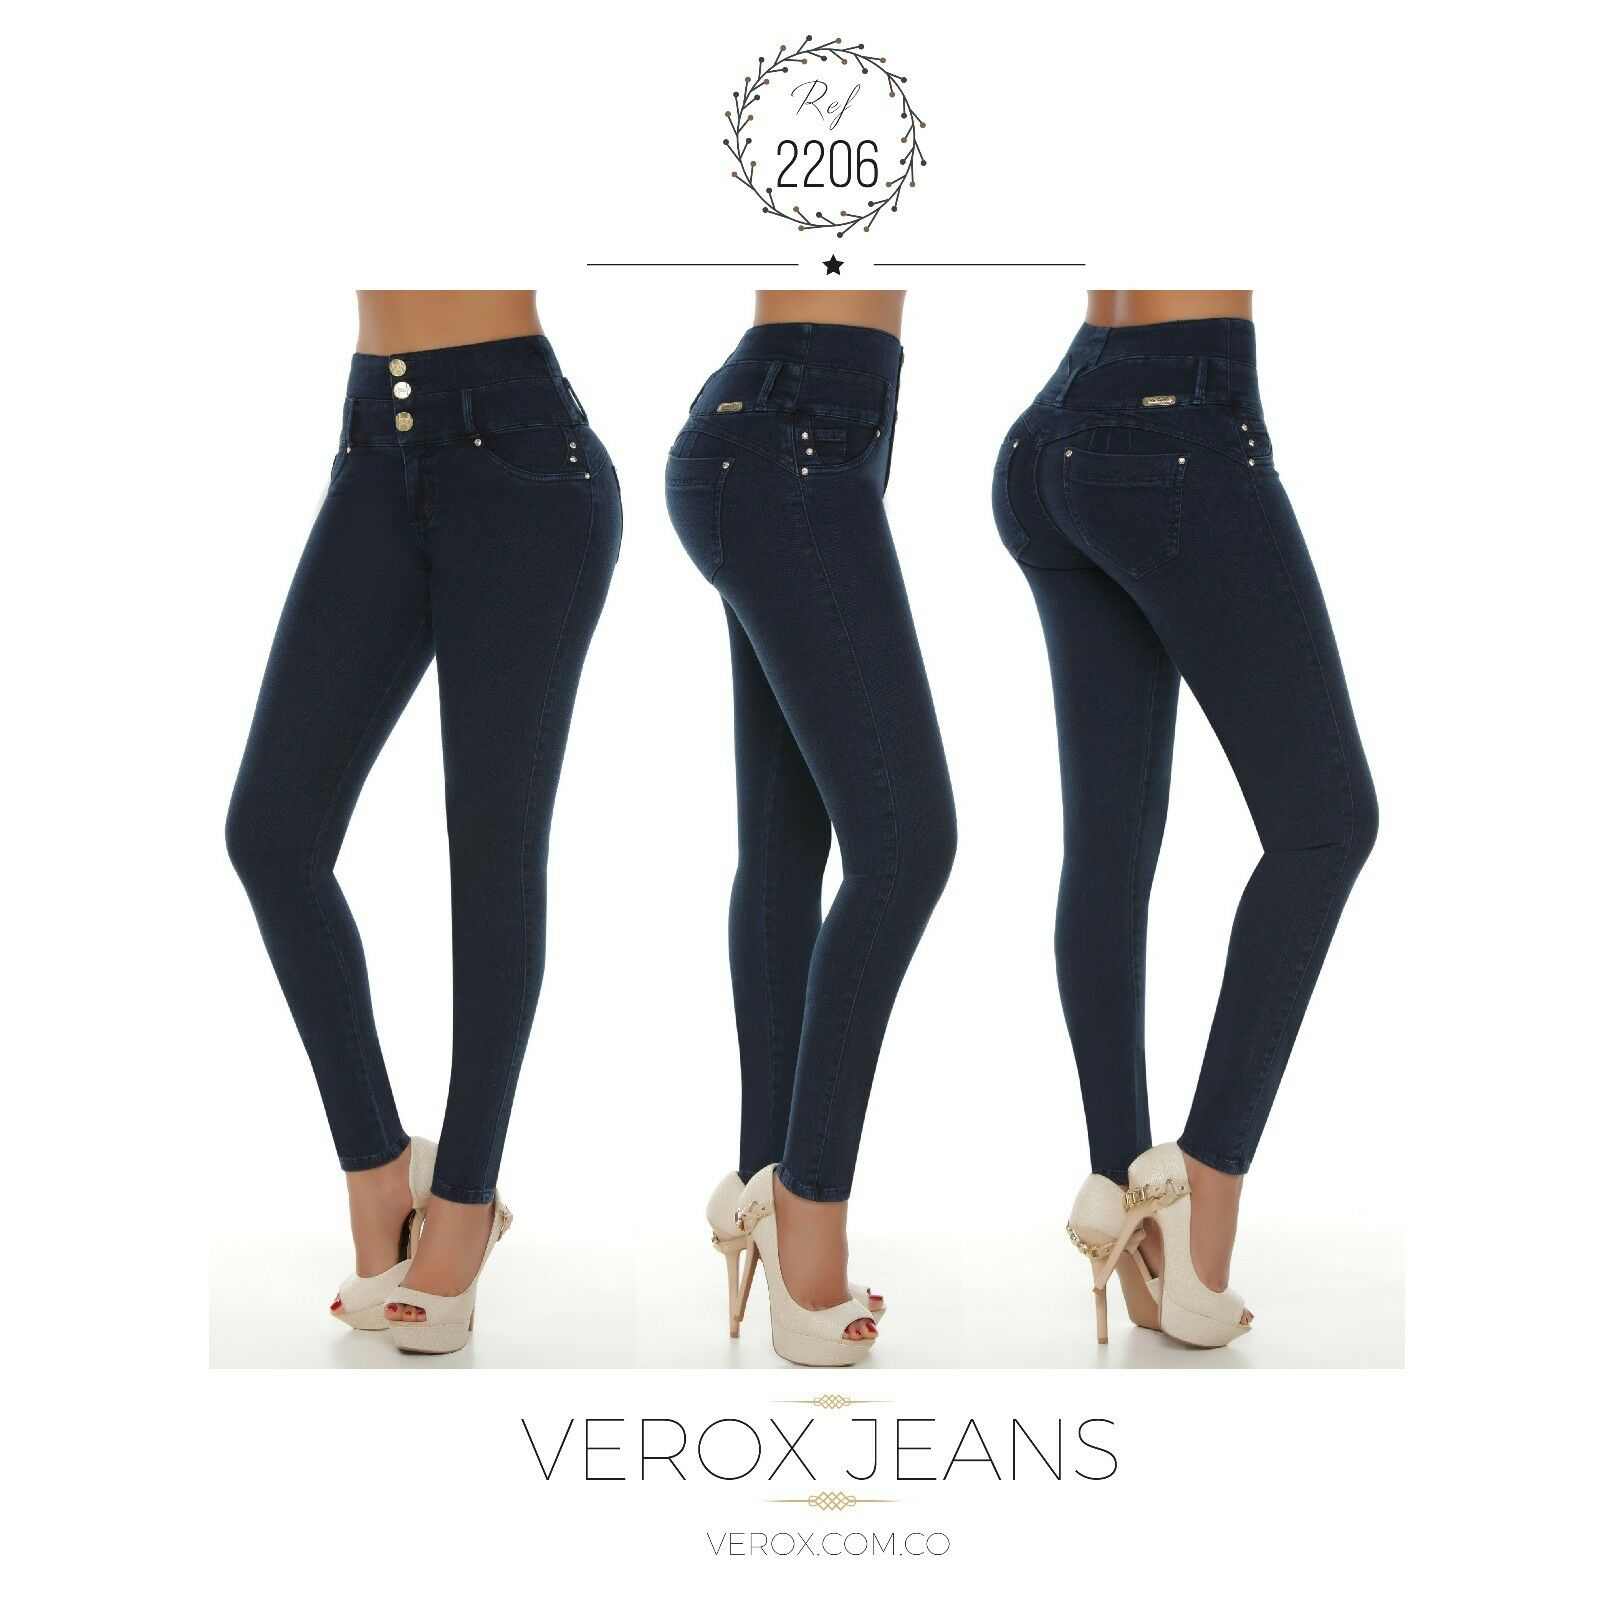 Verox Jeans colombianos butt lifter fajas colombianas jeans levanta cola 2206